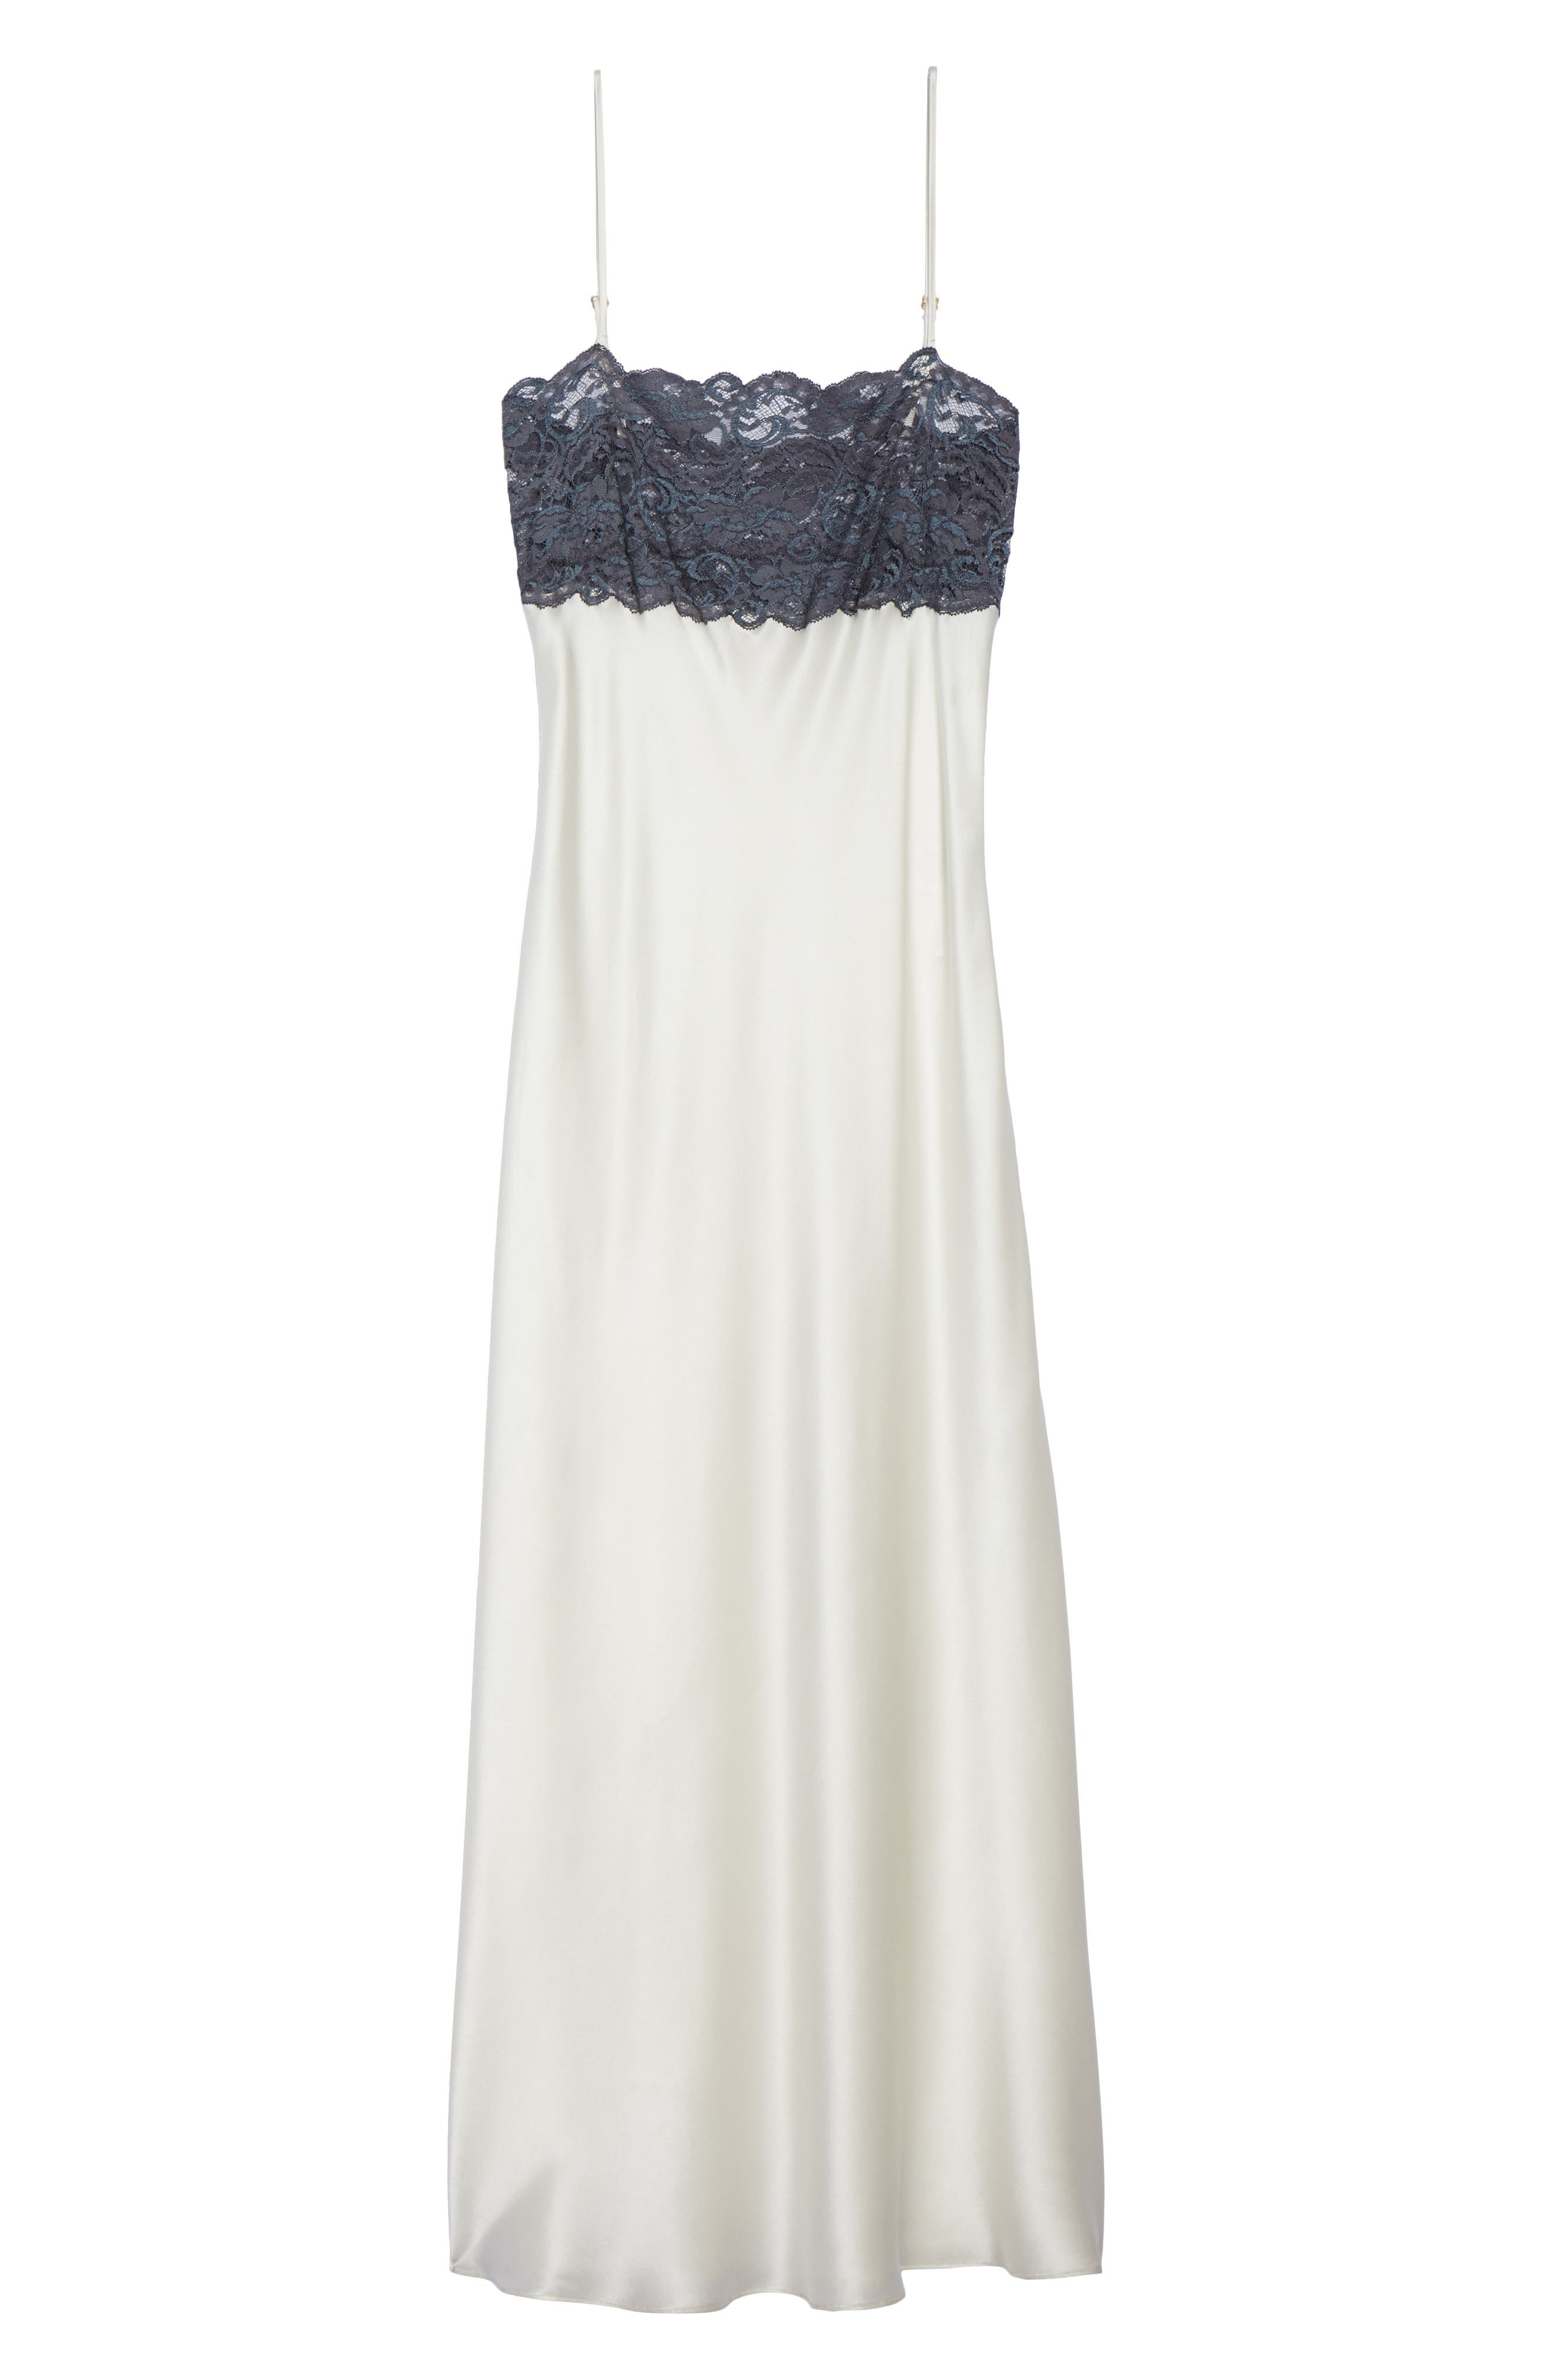 Christine Stretch Lace Silk Nightgown,                             Alternate thumbnail 6, color,                             PEARL / GRAPHITE